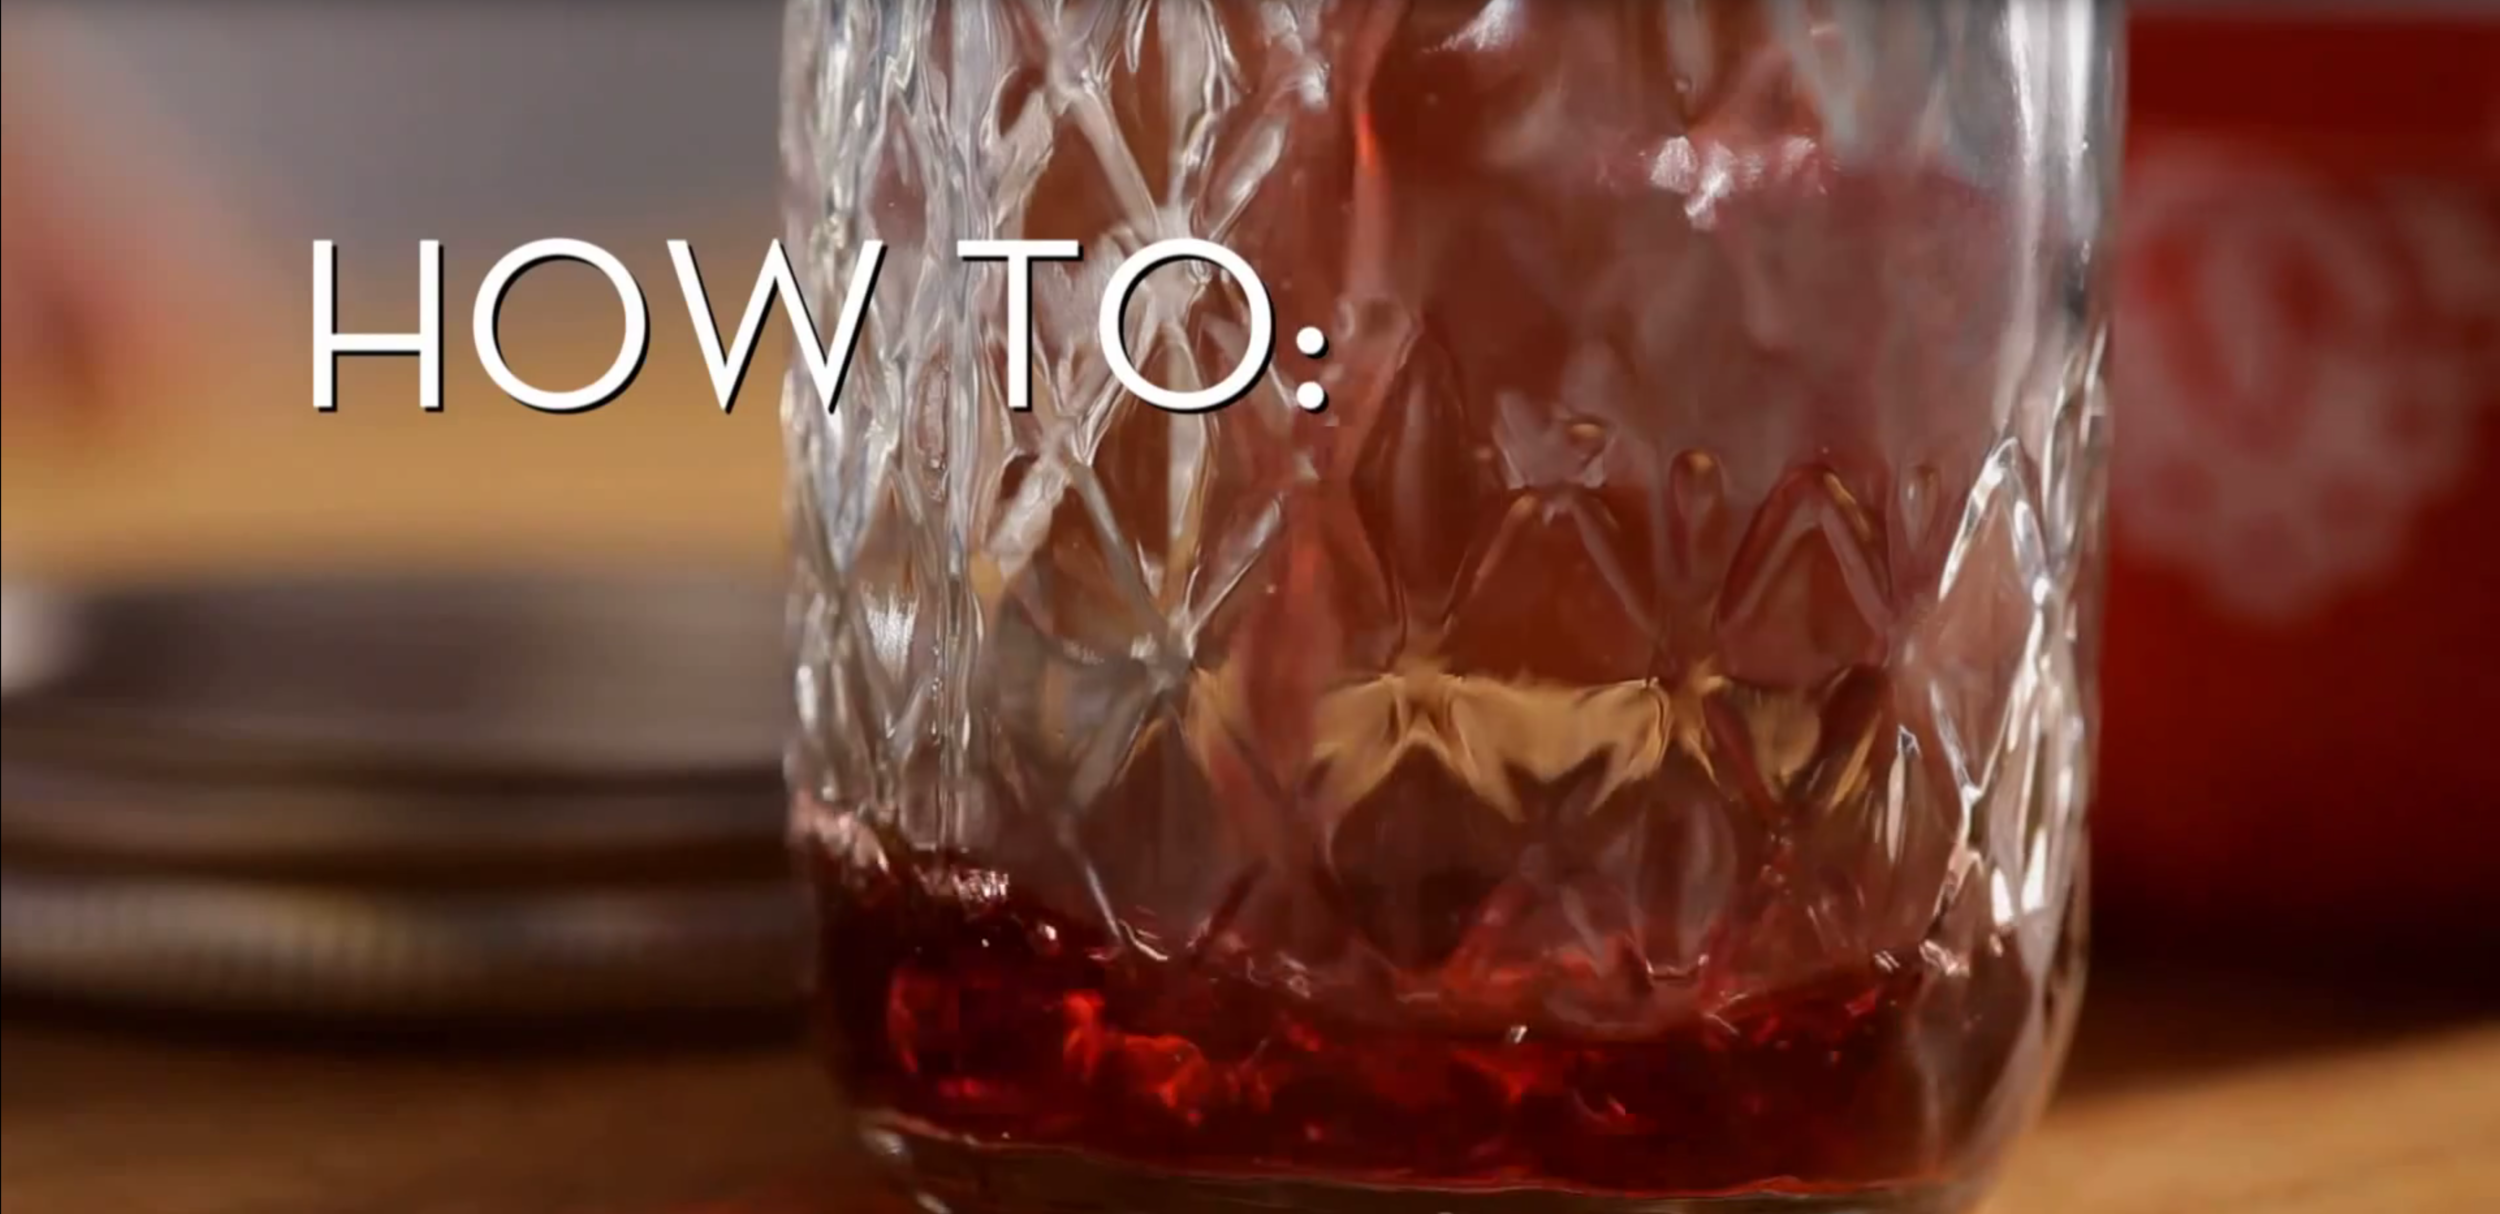 Food Network's How To